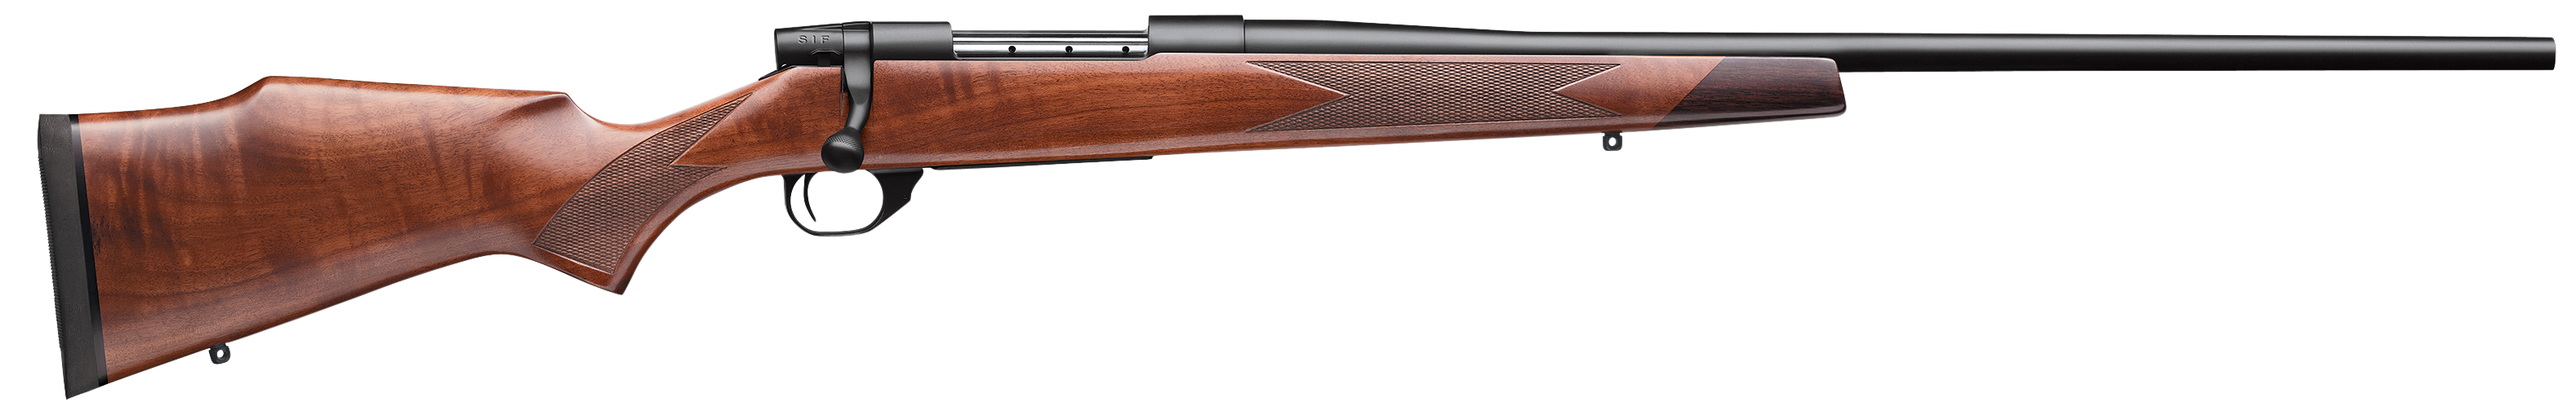 Weatherby Vanguard Sporter 300 Wby Mag 26